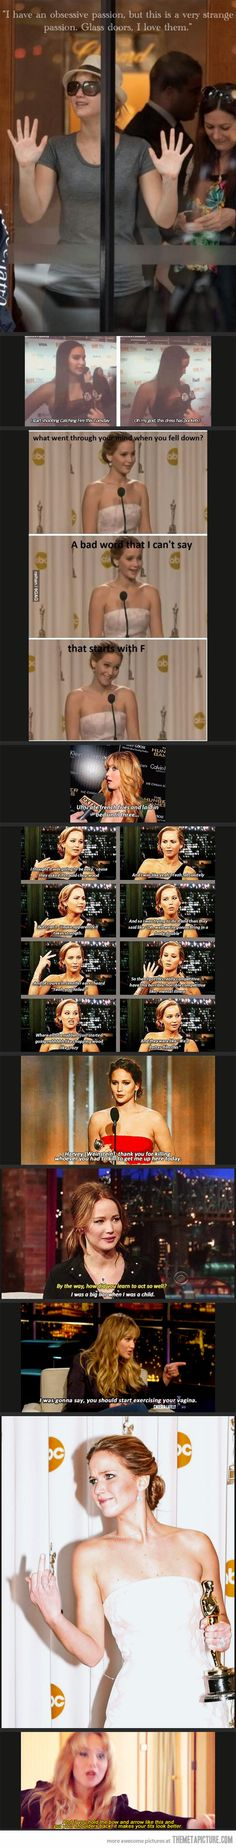 funny-Jennifer-Lawrence-quote-Oscars ♥ I haven't even watched Hunger Games yet, but I ♡ her so much from all the stuff She says. like, Jennifer, get out of my head! J Law, Suzanne Collins, Hunger Games, Katniss Everdeen, Superwholock, I Look To You, Tribute Von Panem, Trey Songz, Jc Caylen